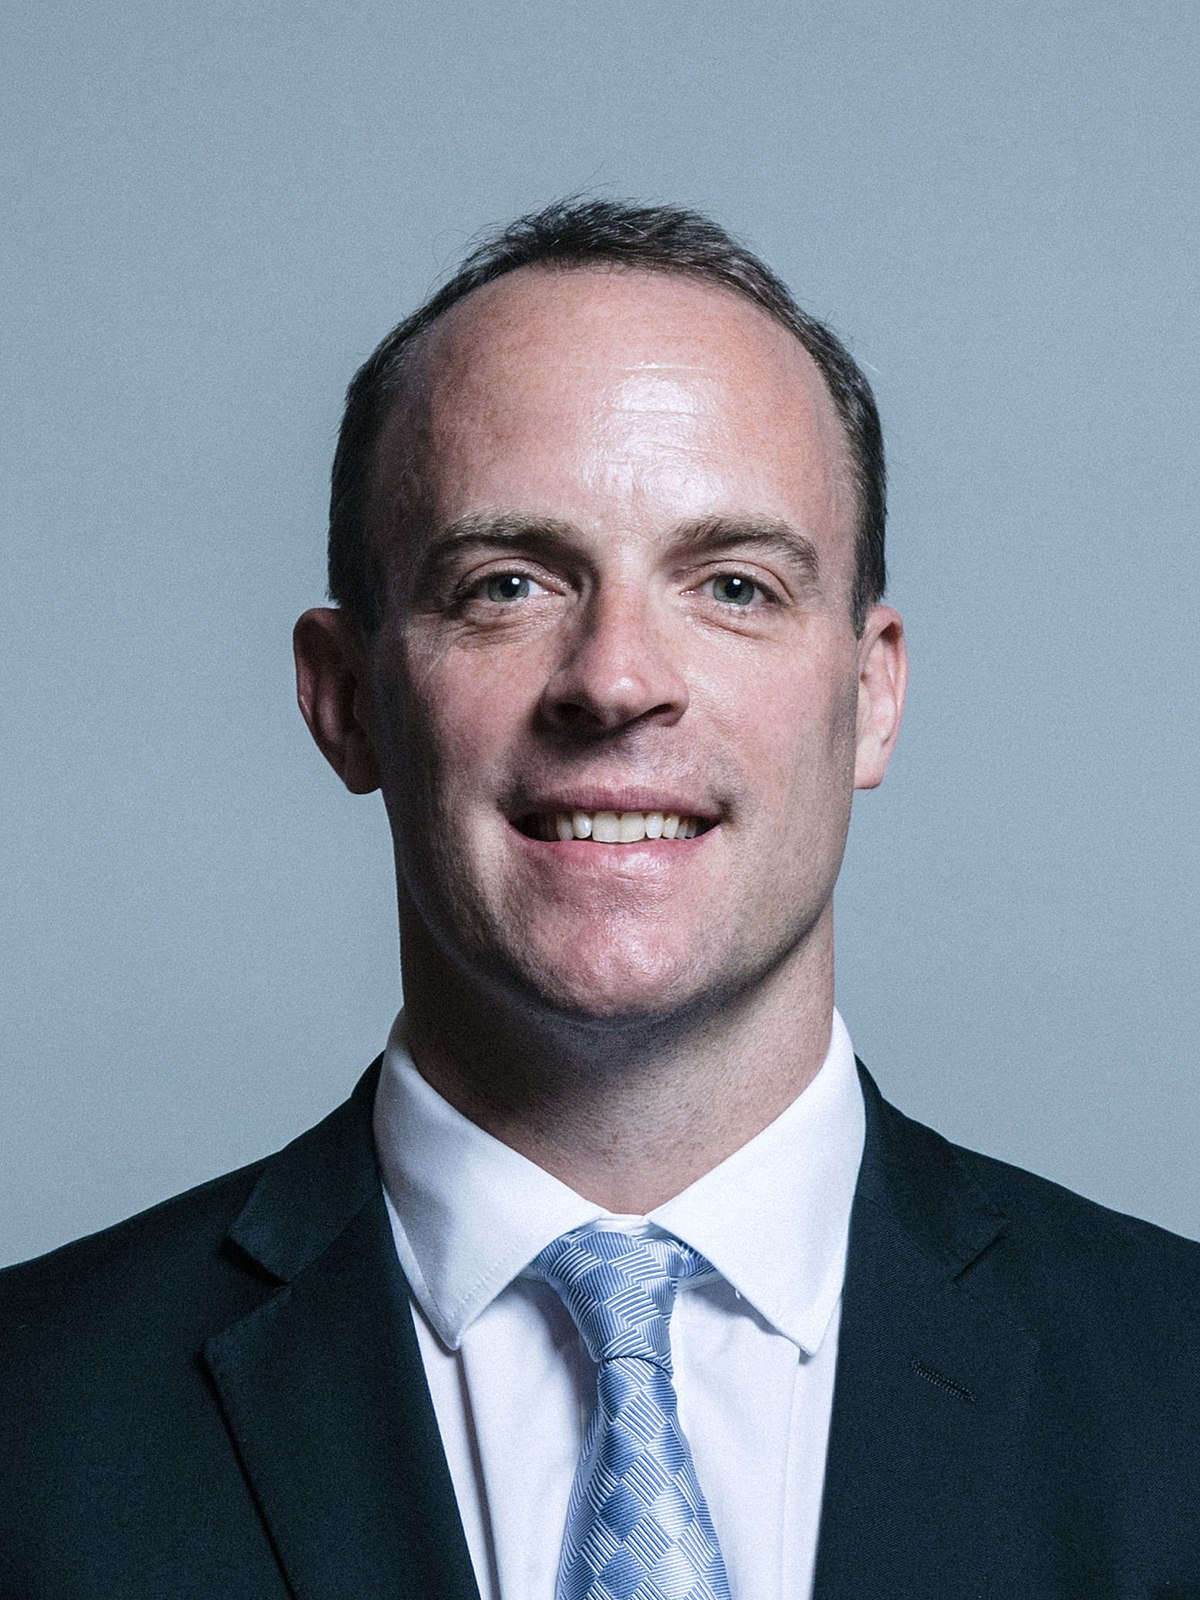 1200px-Official_portrait_of_Dominic_Raab_crop_2.jpg